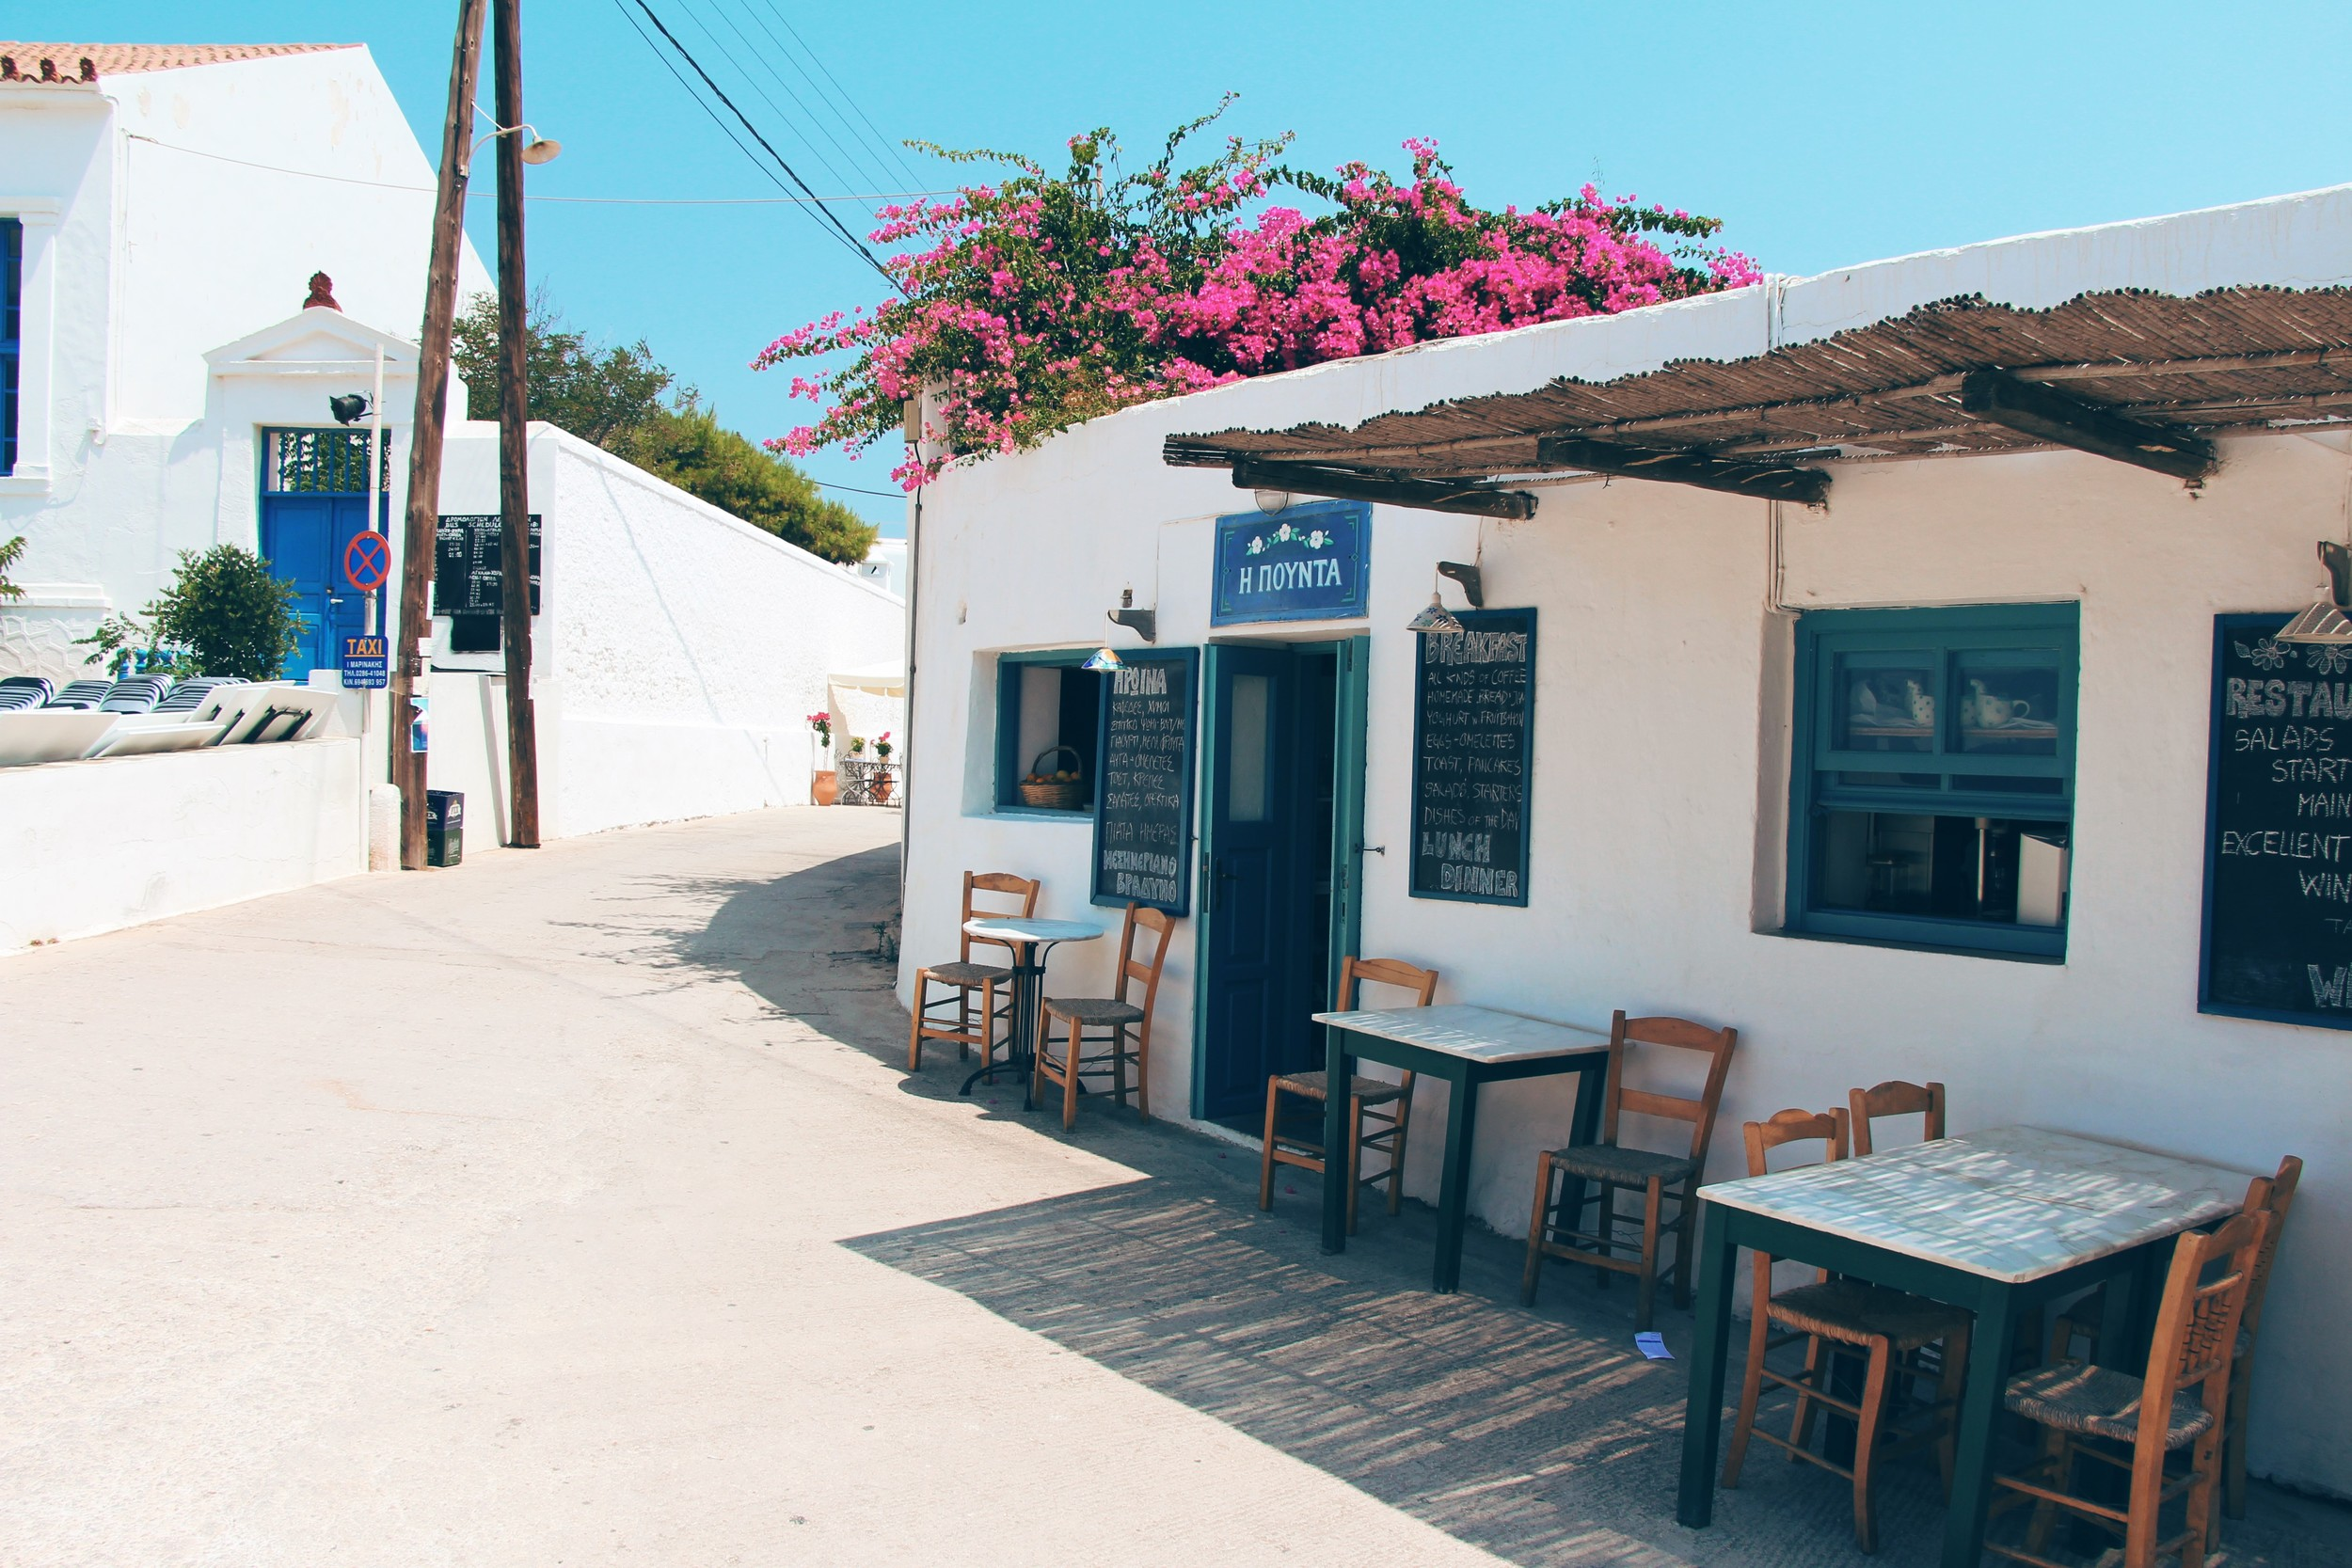 Pounta serves great breakfast with freshly baked bread,locally produced jams and tasty eggs